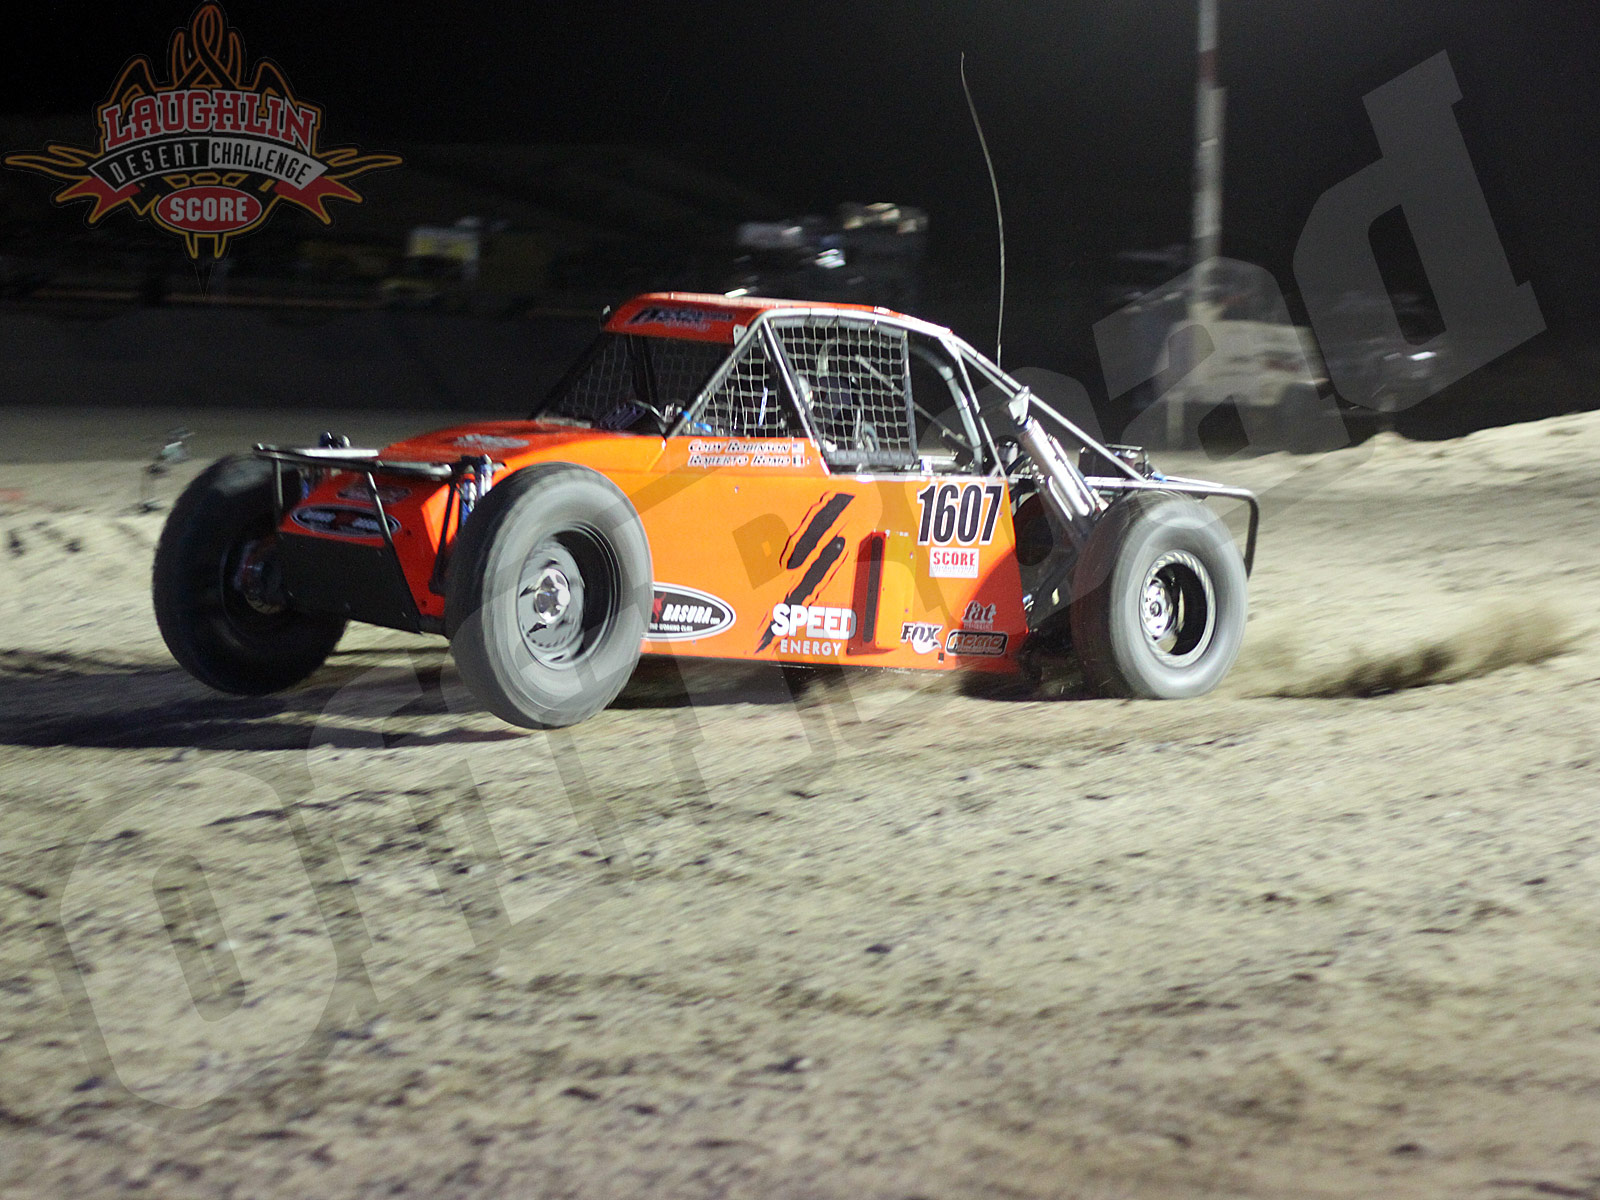 012611or 5164+2011 score laughlin desert challenge+laughlin leap